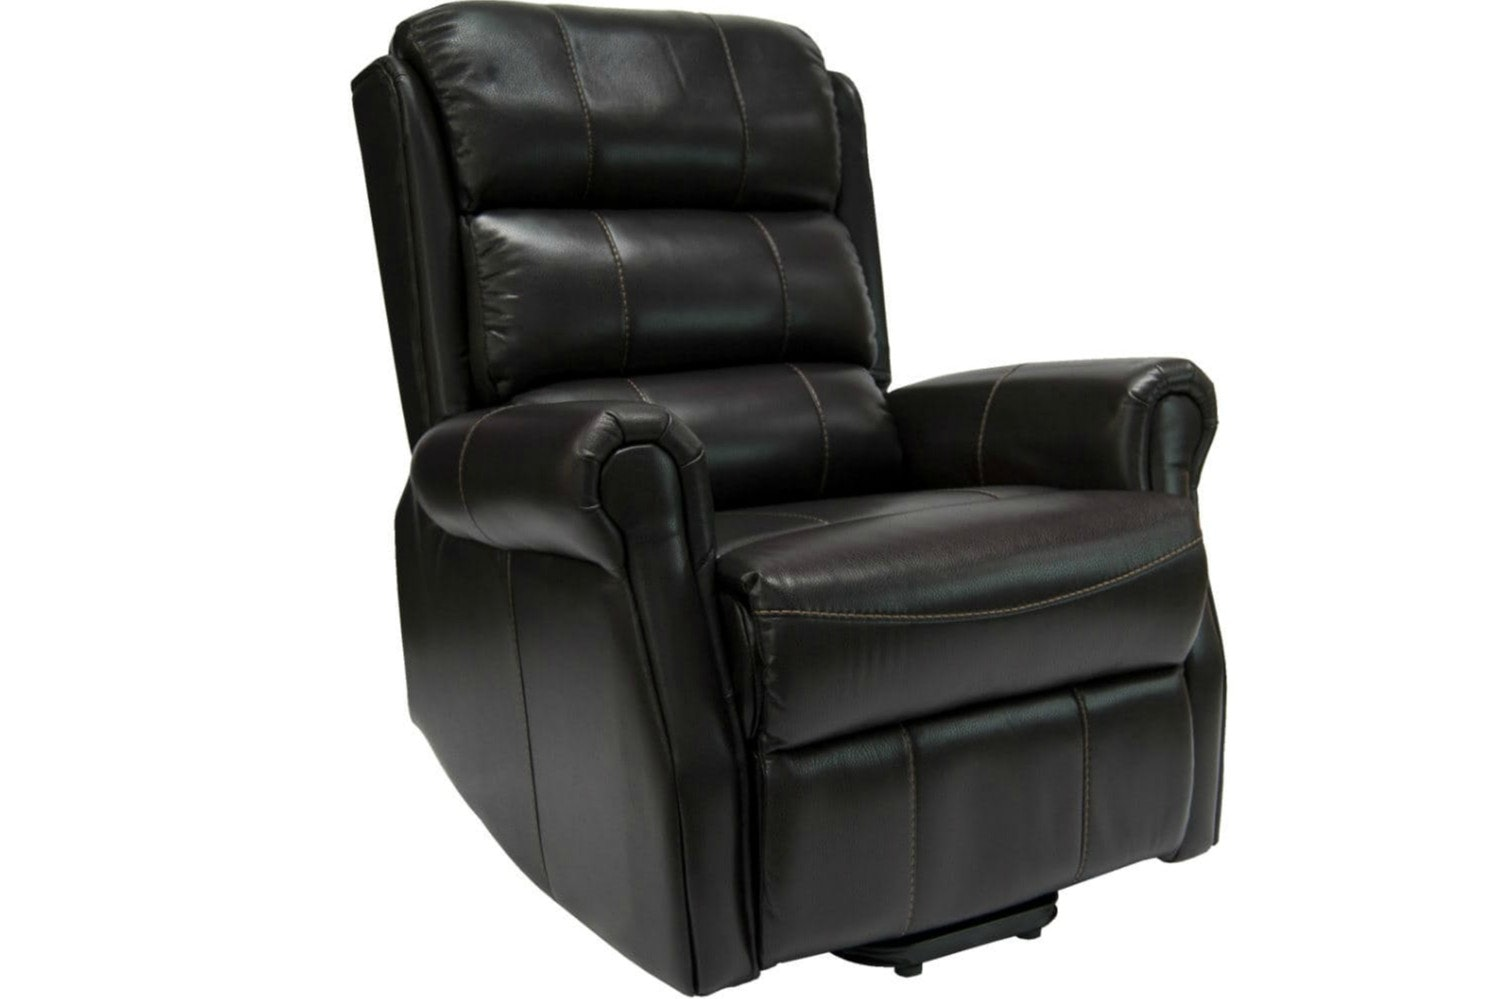 Hudson Recliner Electric Leather